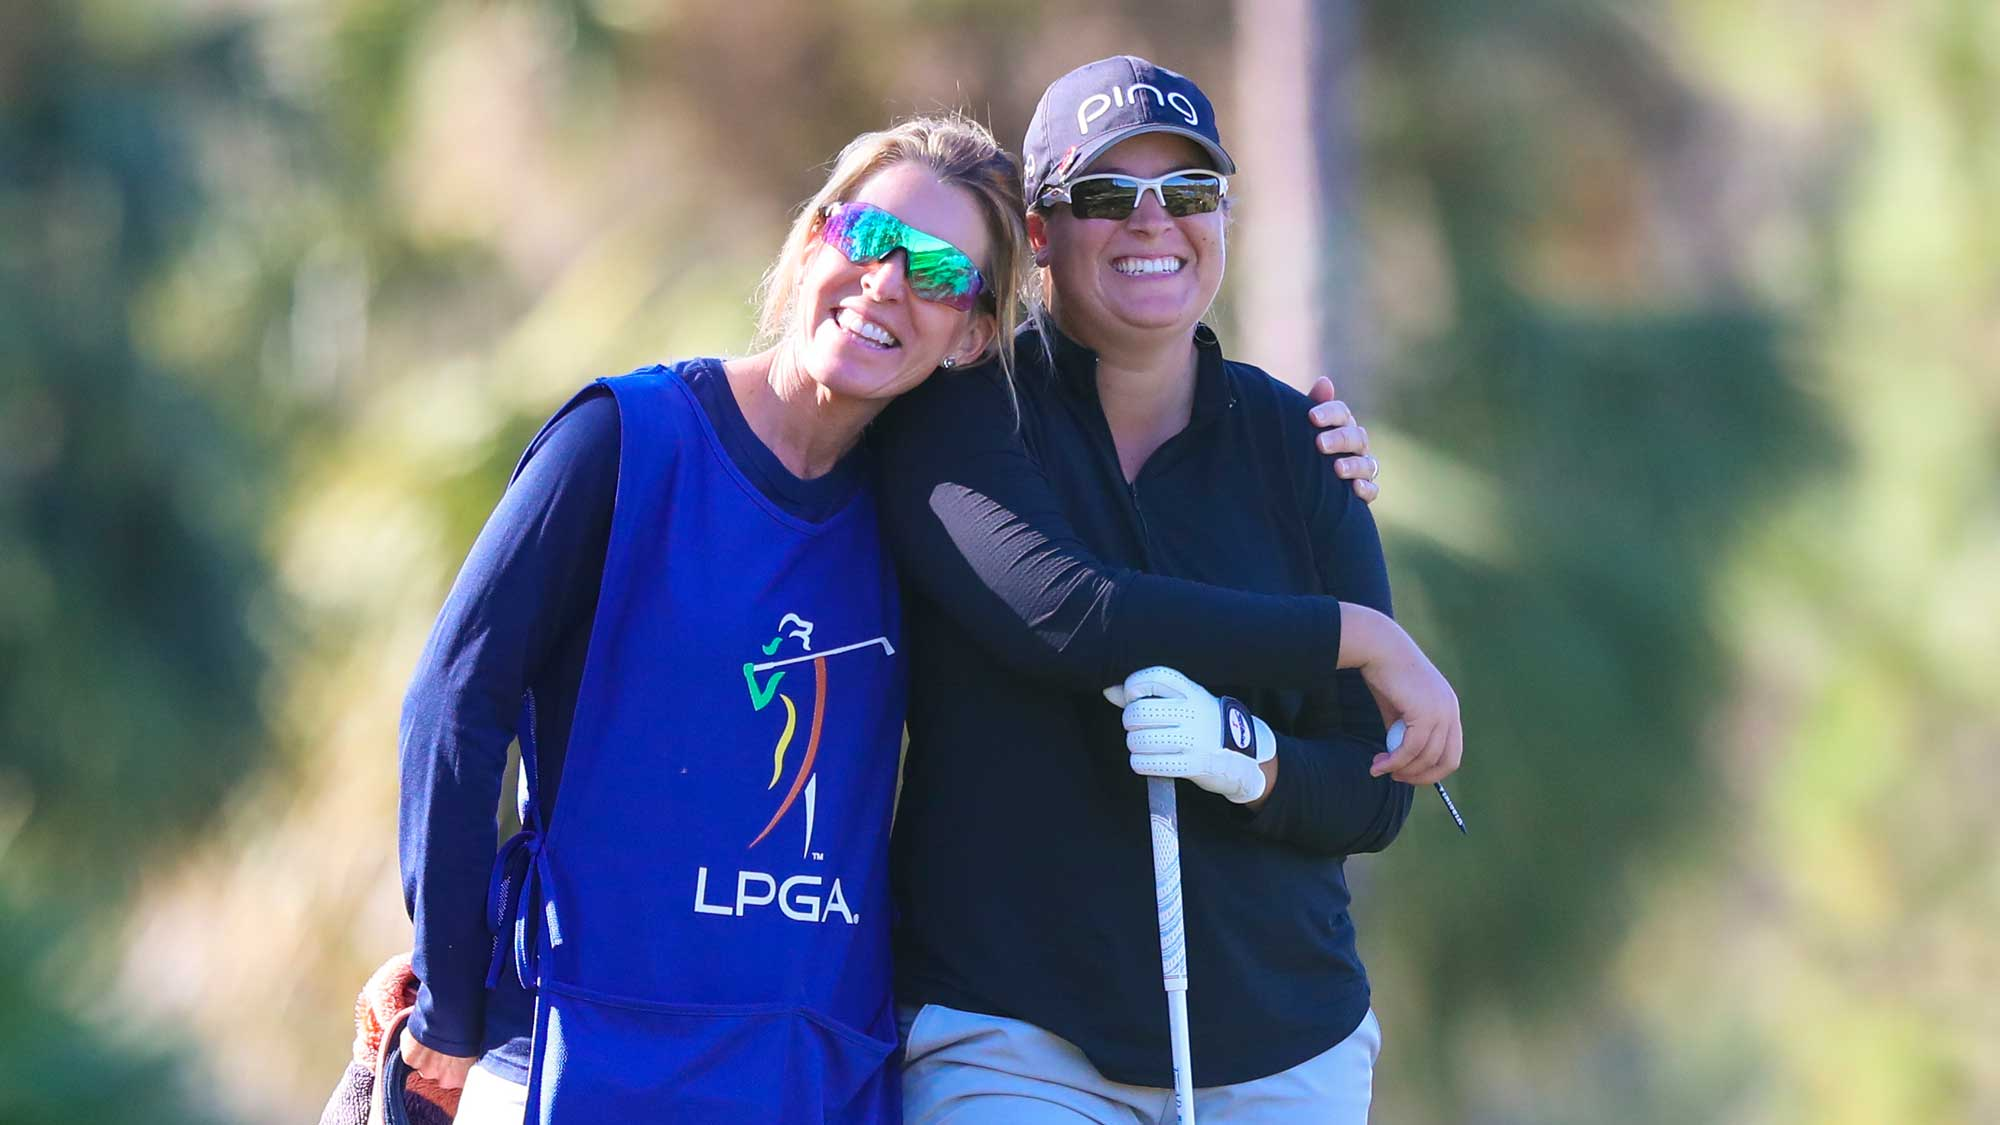 LPGA to add two events in United States  next season